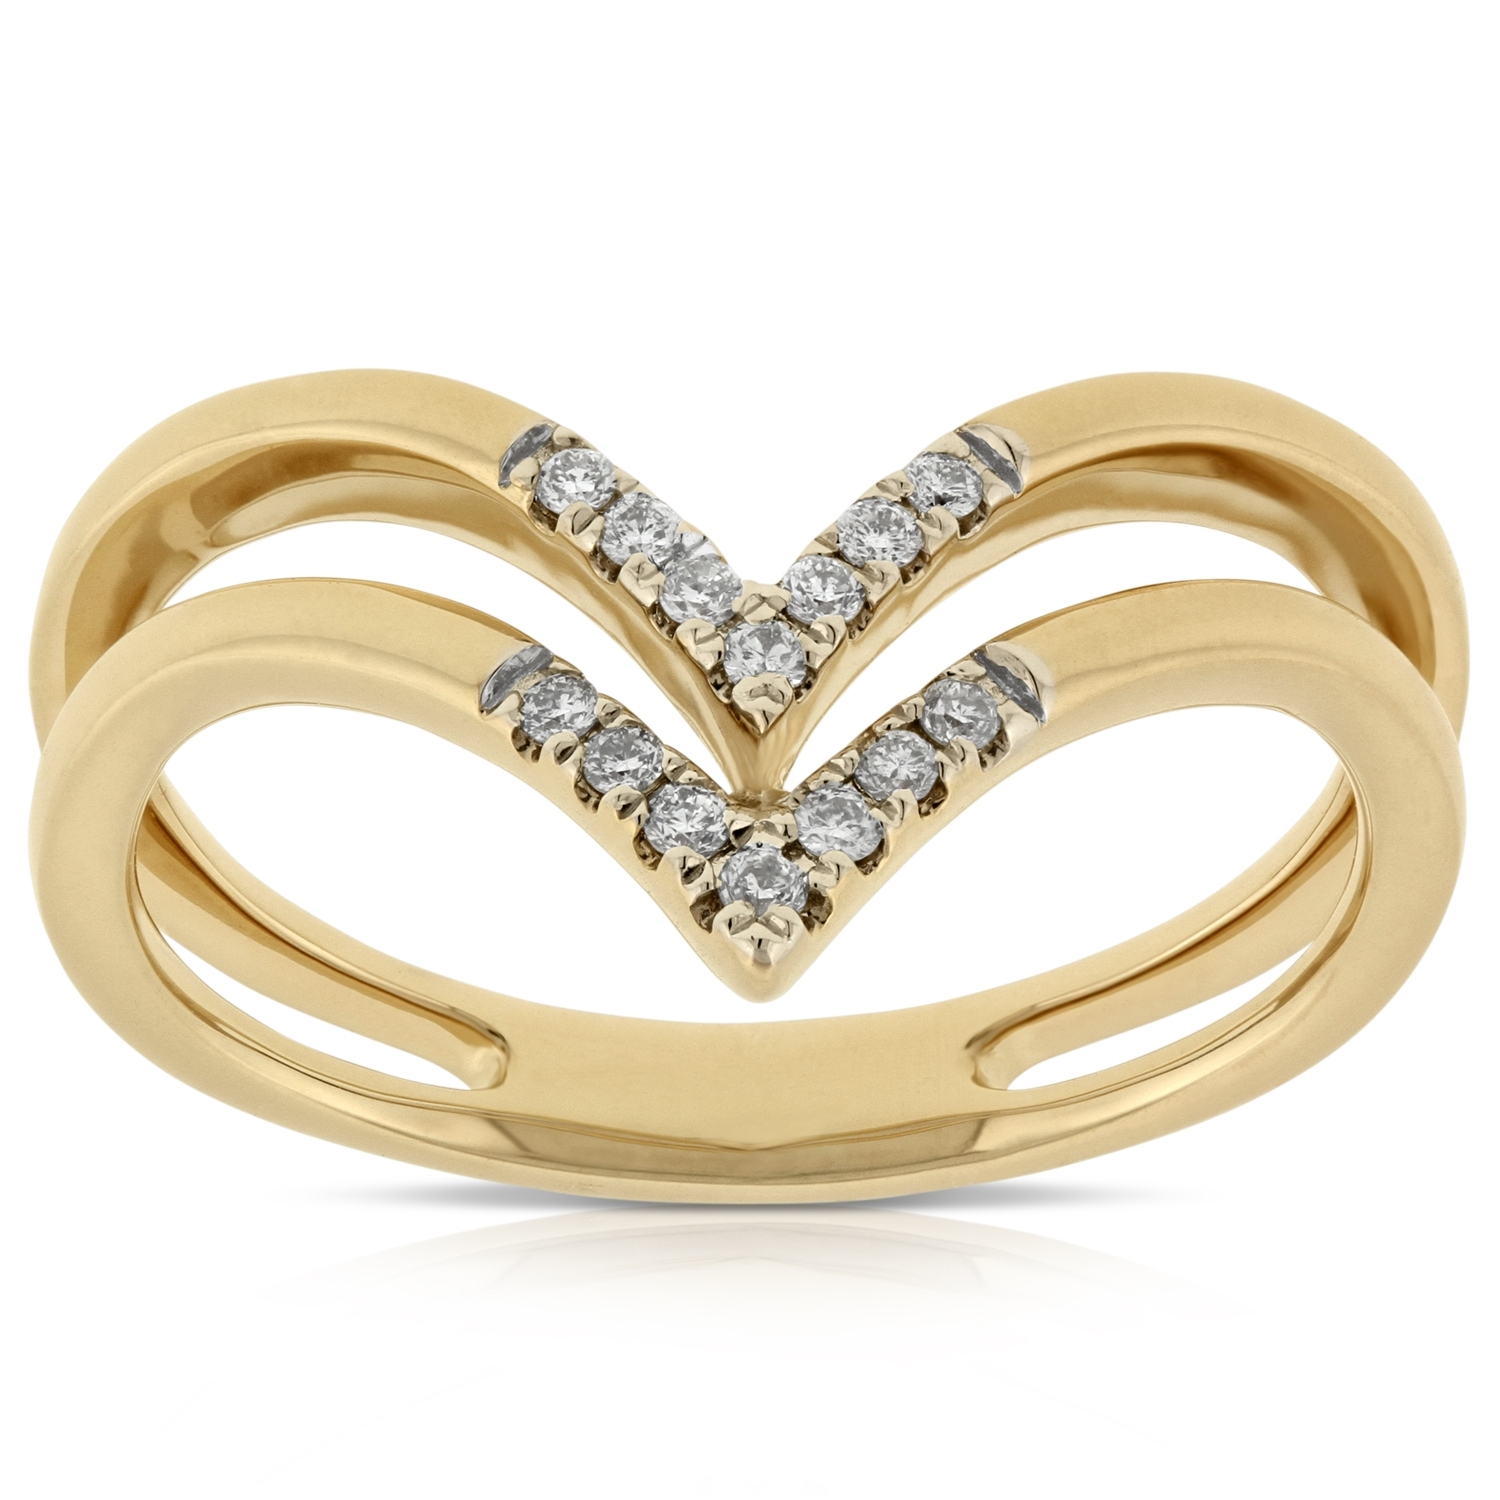 Double Chevron Diamond Ring 14K | Ben Bridge Jeweler For Current Chevron Engagement Rings (Gallery 10 of 15)